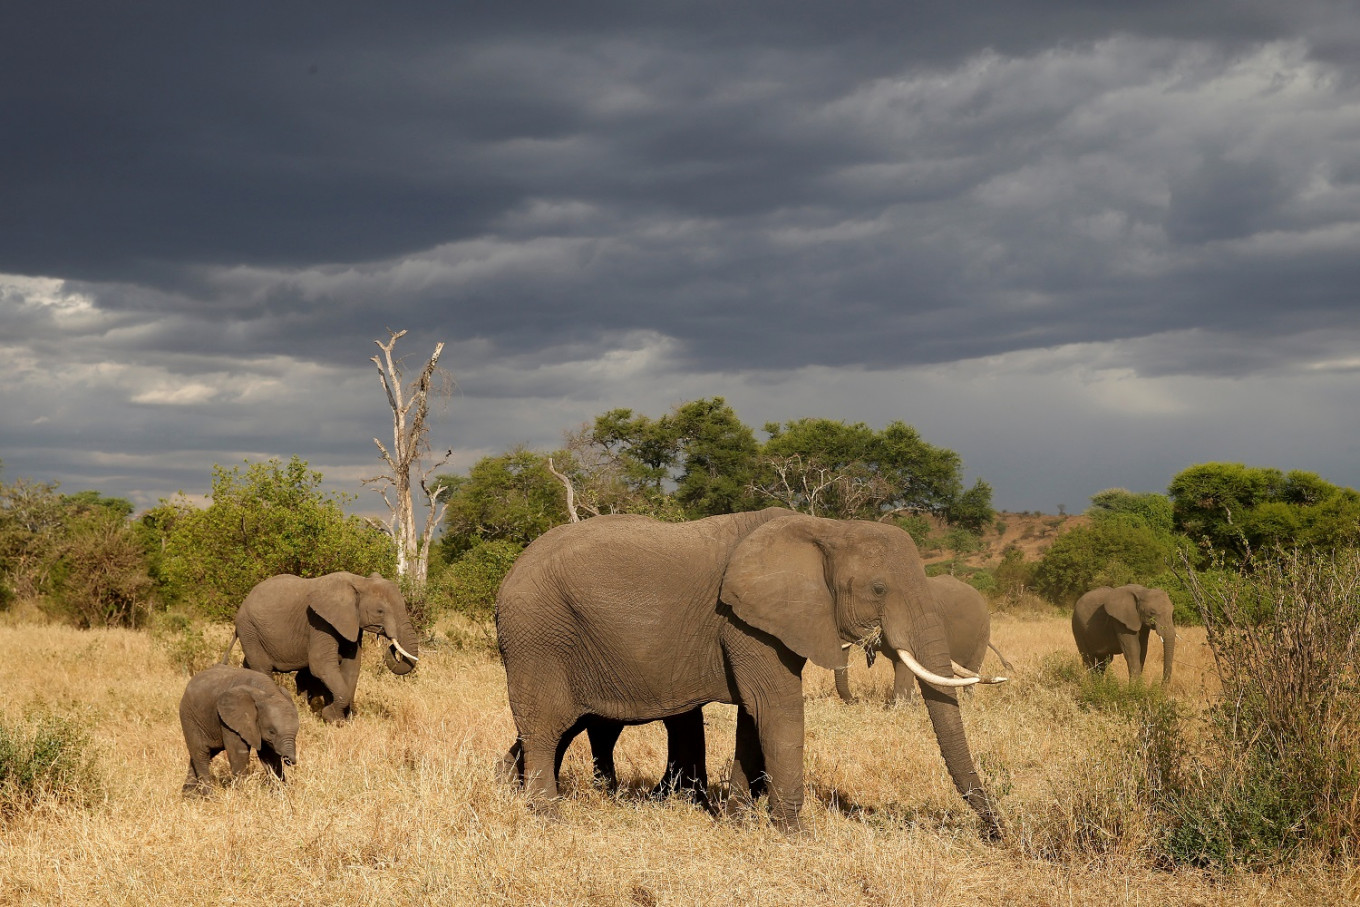 Tanzania says elephant, rhino populations rebounding after anti-poaching crackdown